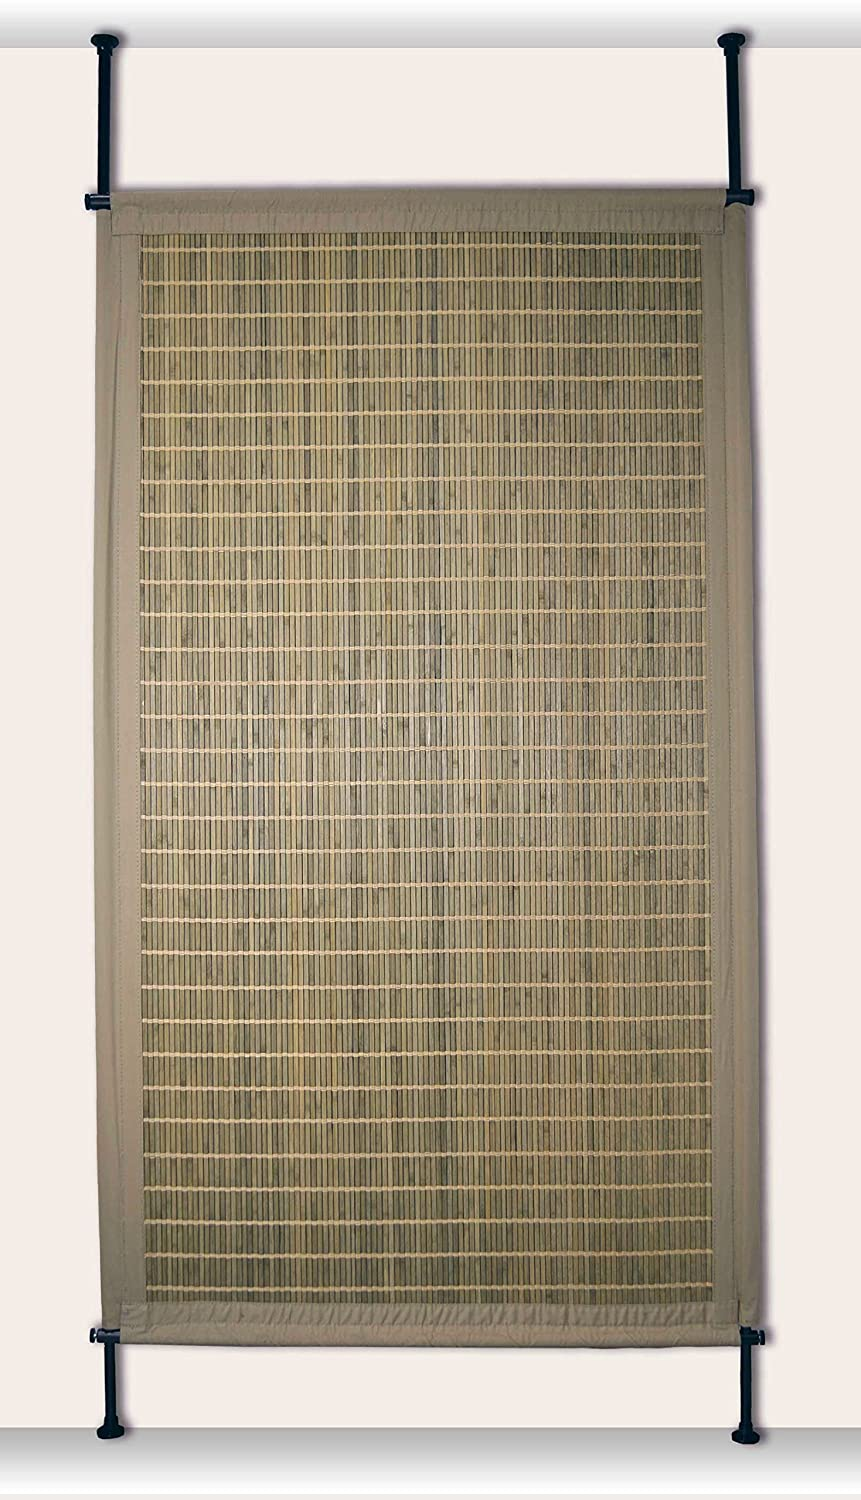 Driftwood 38 x 68 Versailles Home Fashions PP014-25 Bamboo Privacy Panel